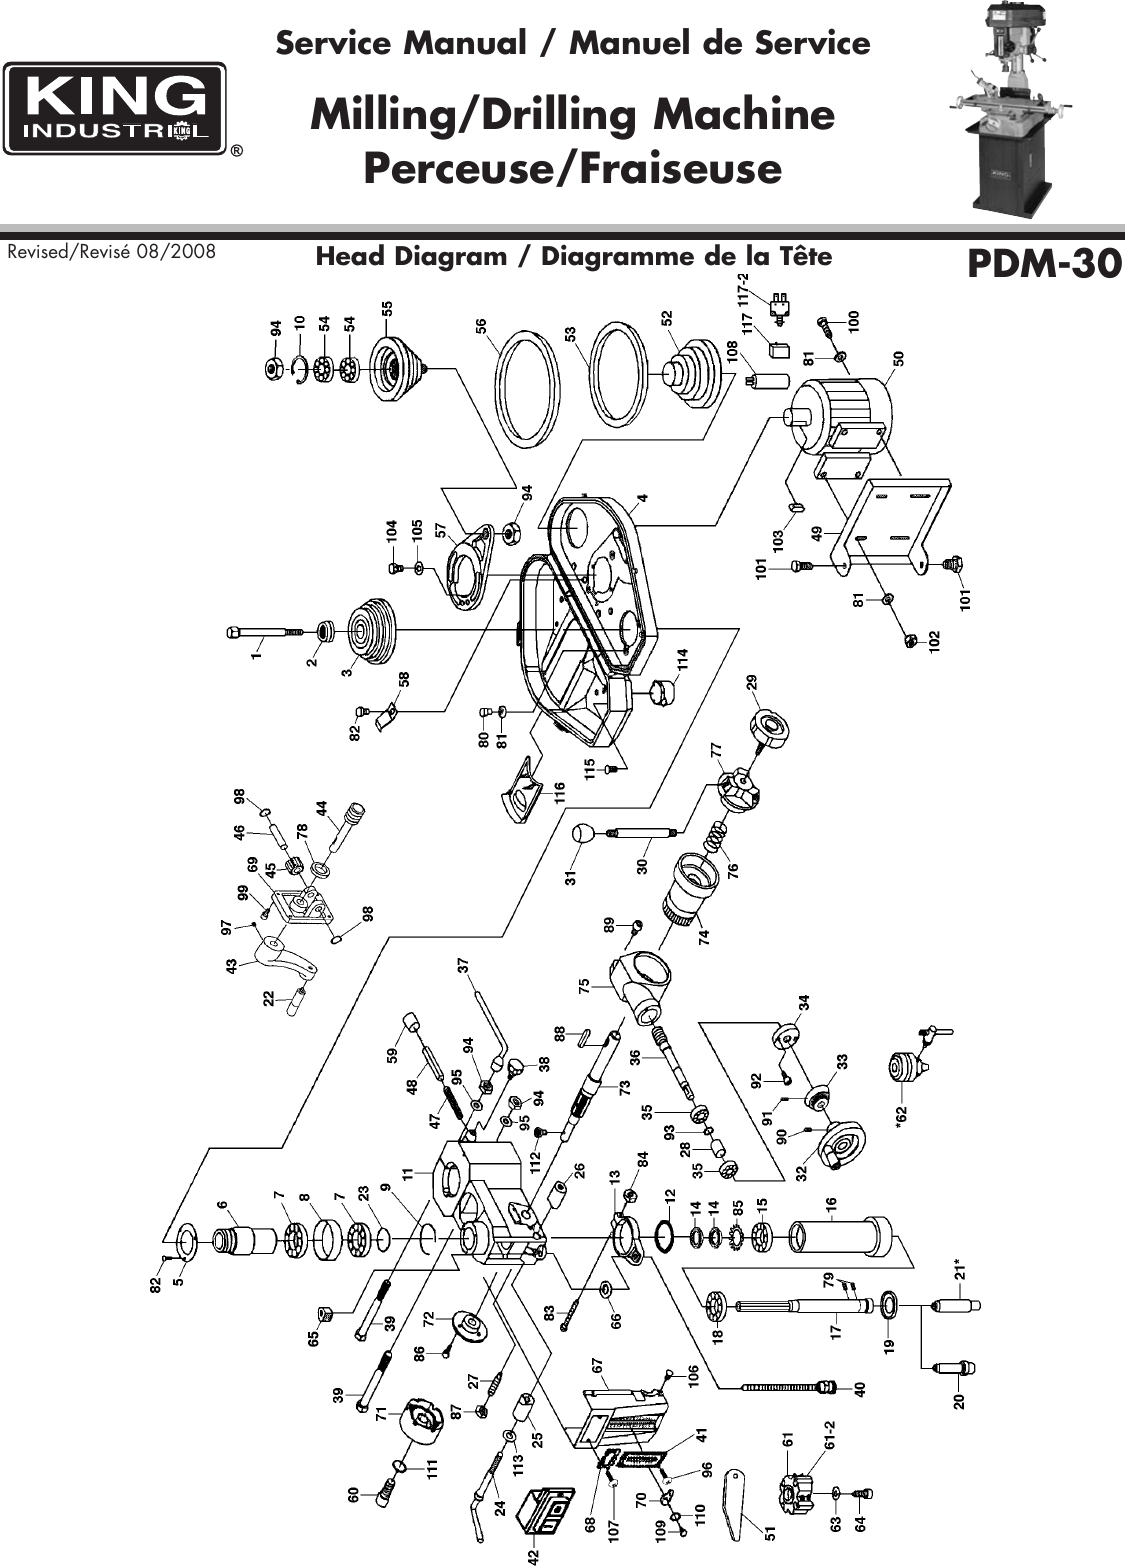 King Canada Pdm 30 Users Manual